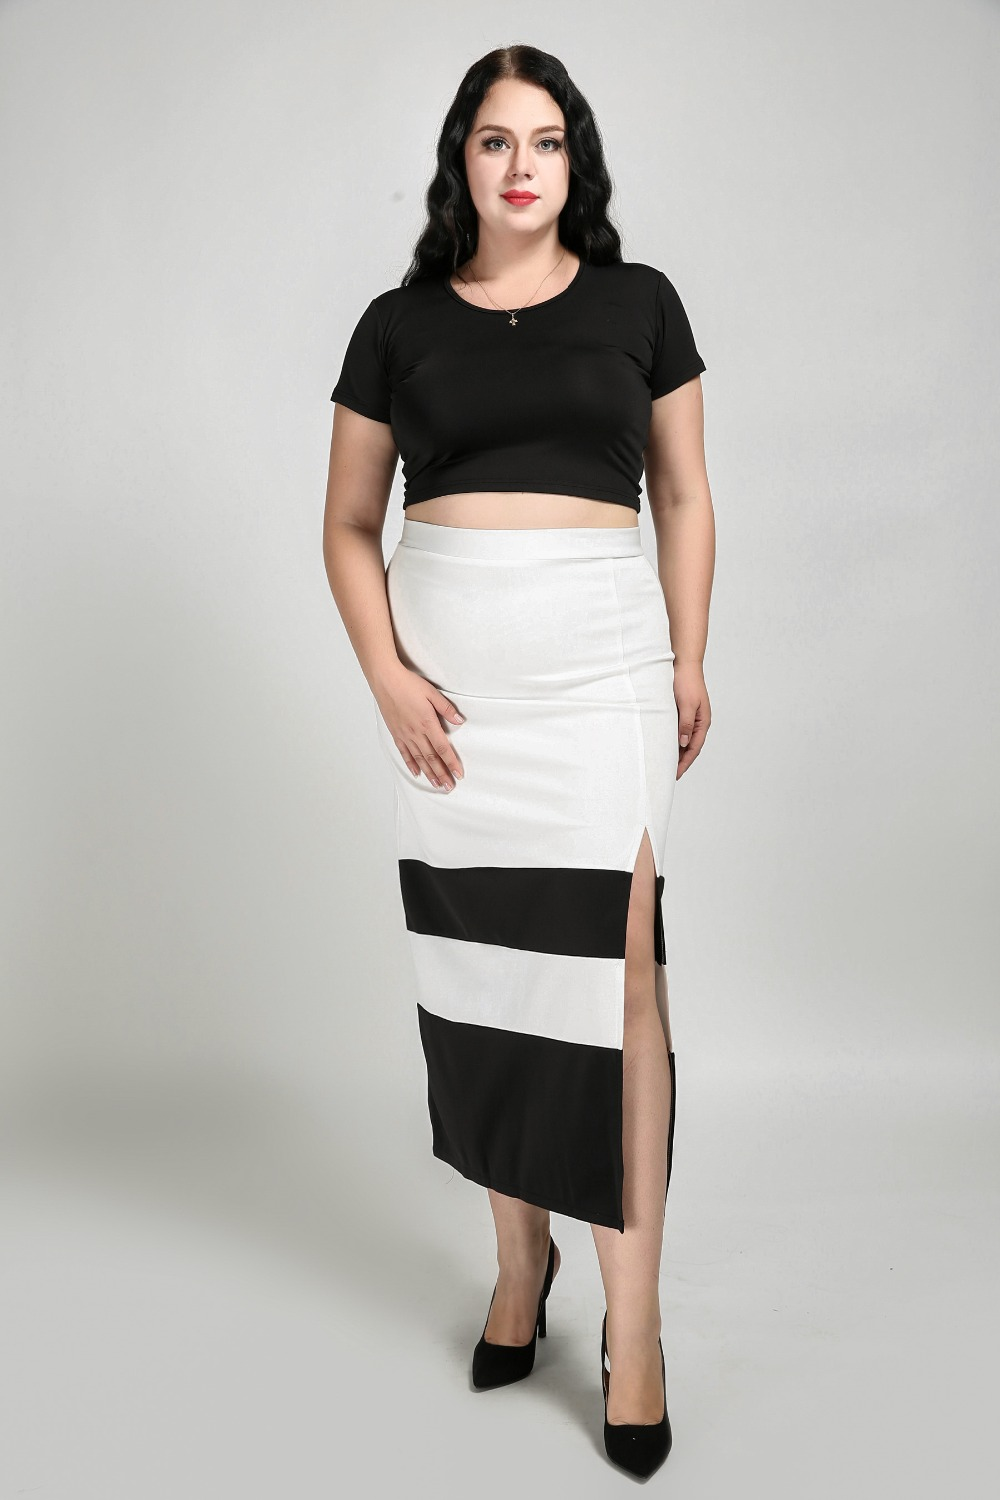 9d06d3cddbe Women s Sexy High Waist Plus Size Maxi Skirt Black And White Patchwork  Casual Skirt With Slits Sides Autumn Winter Skirt